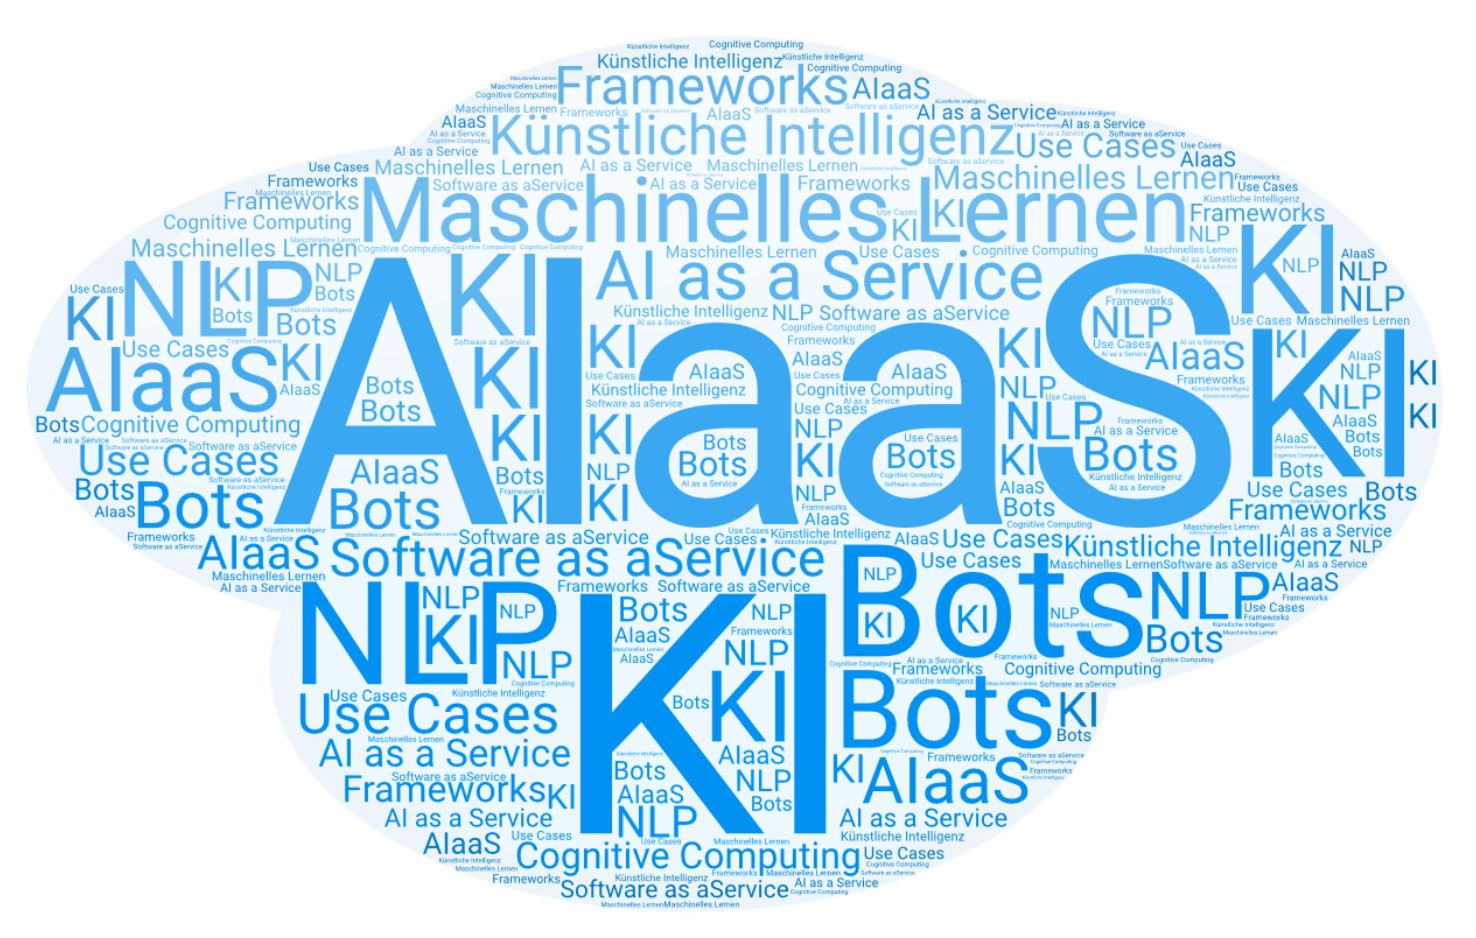 AIaaS - Artificial Intelligence as a Service